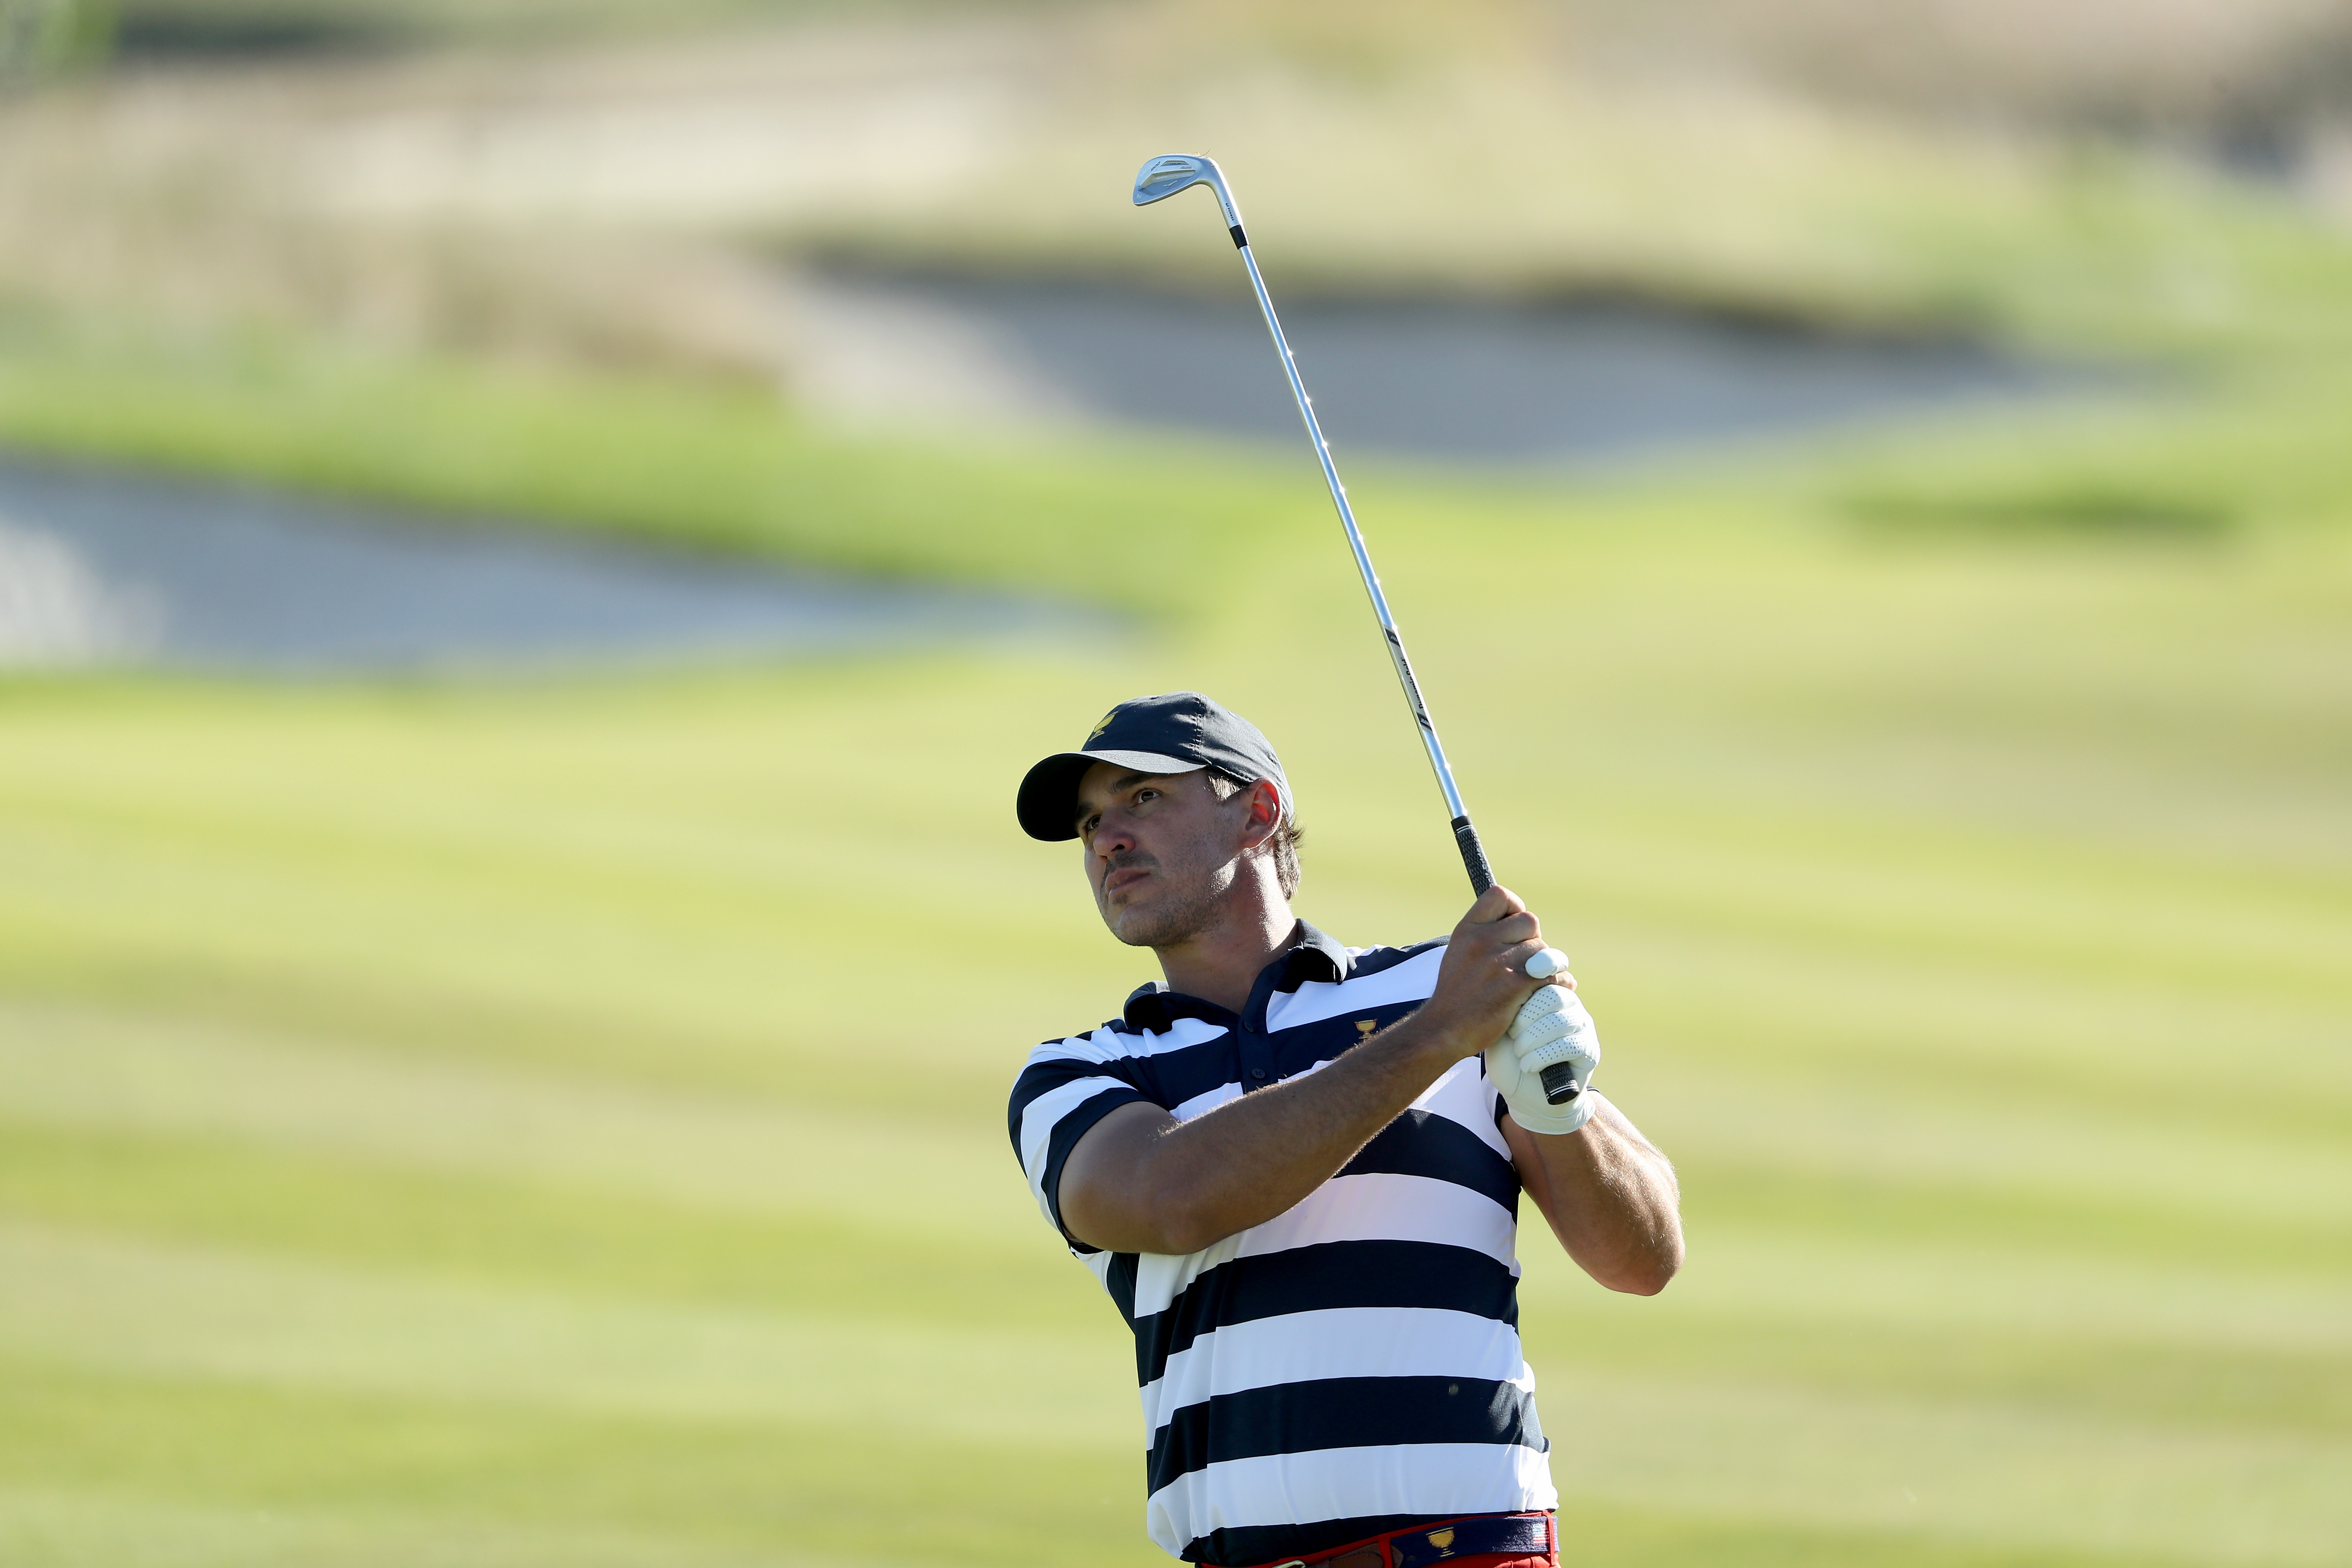 Discovery and PGA Tour team up on GOLFTV streaming service